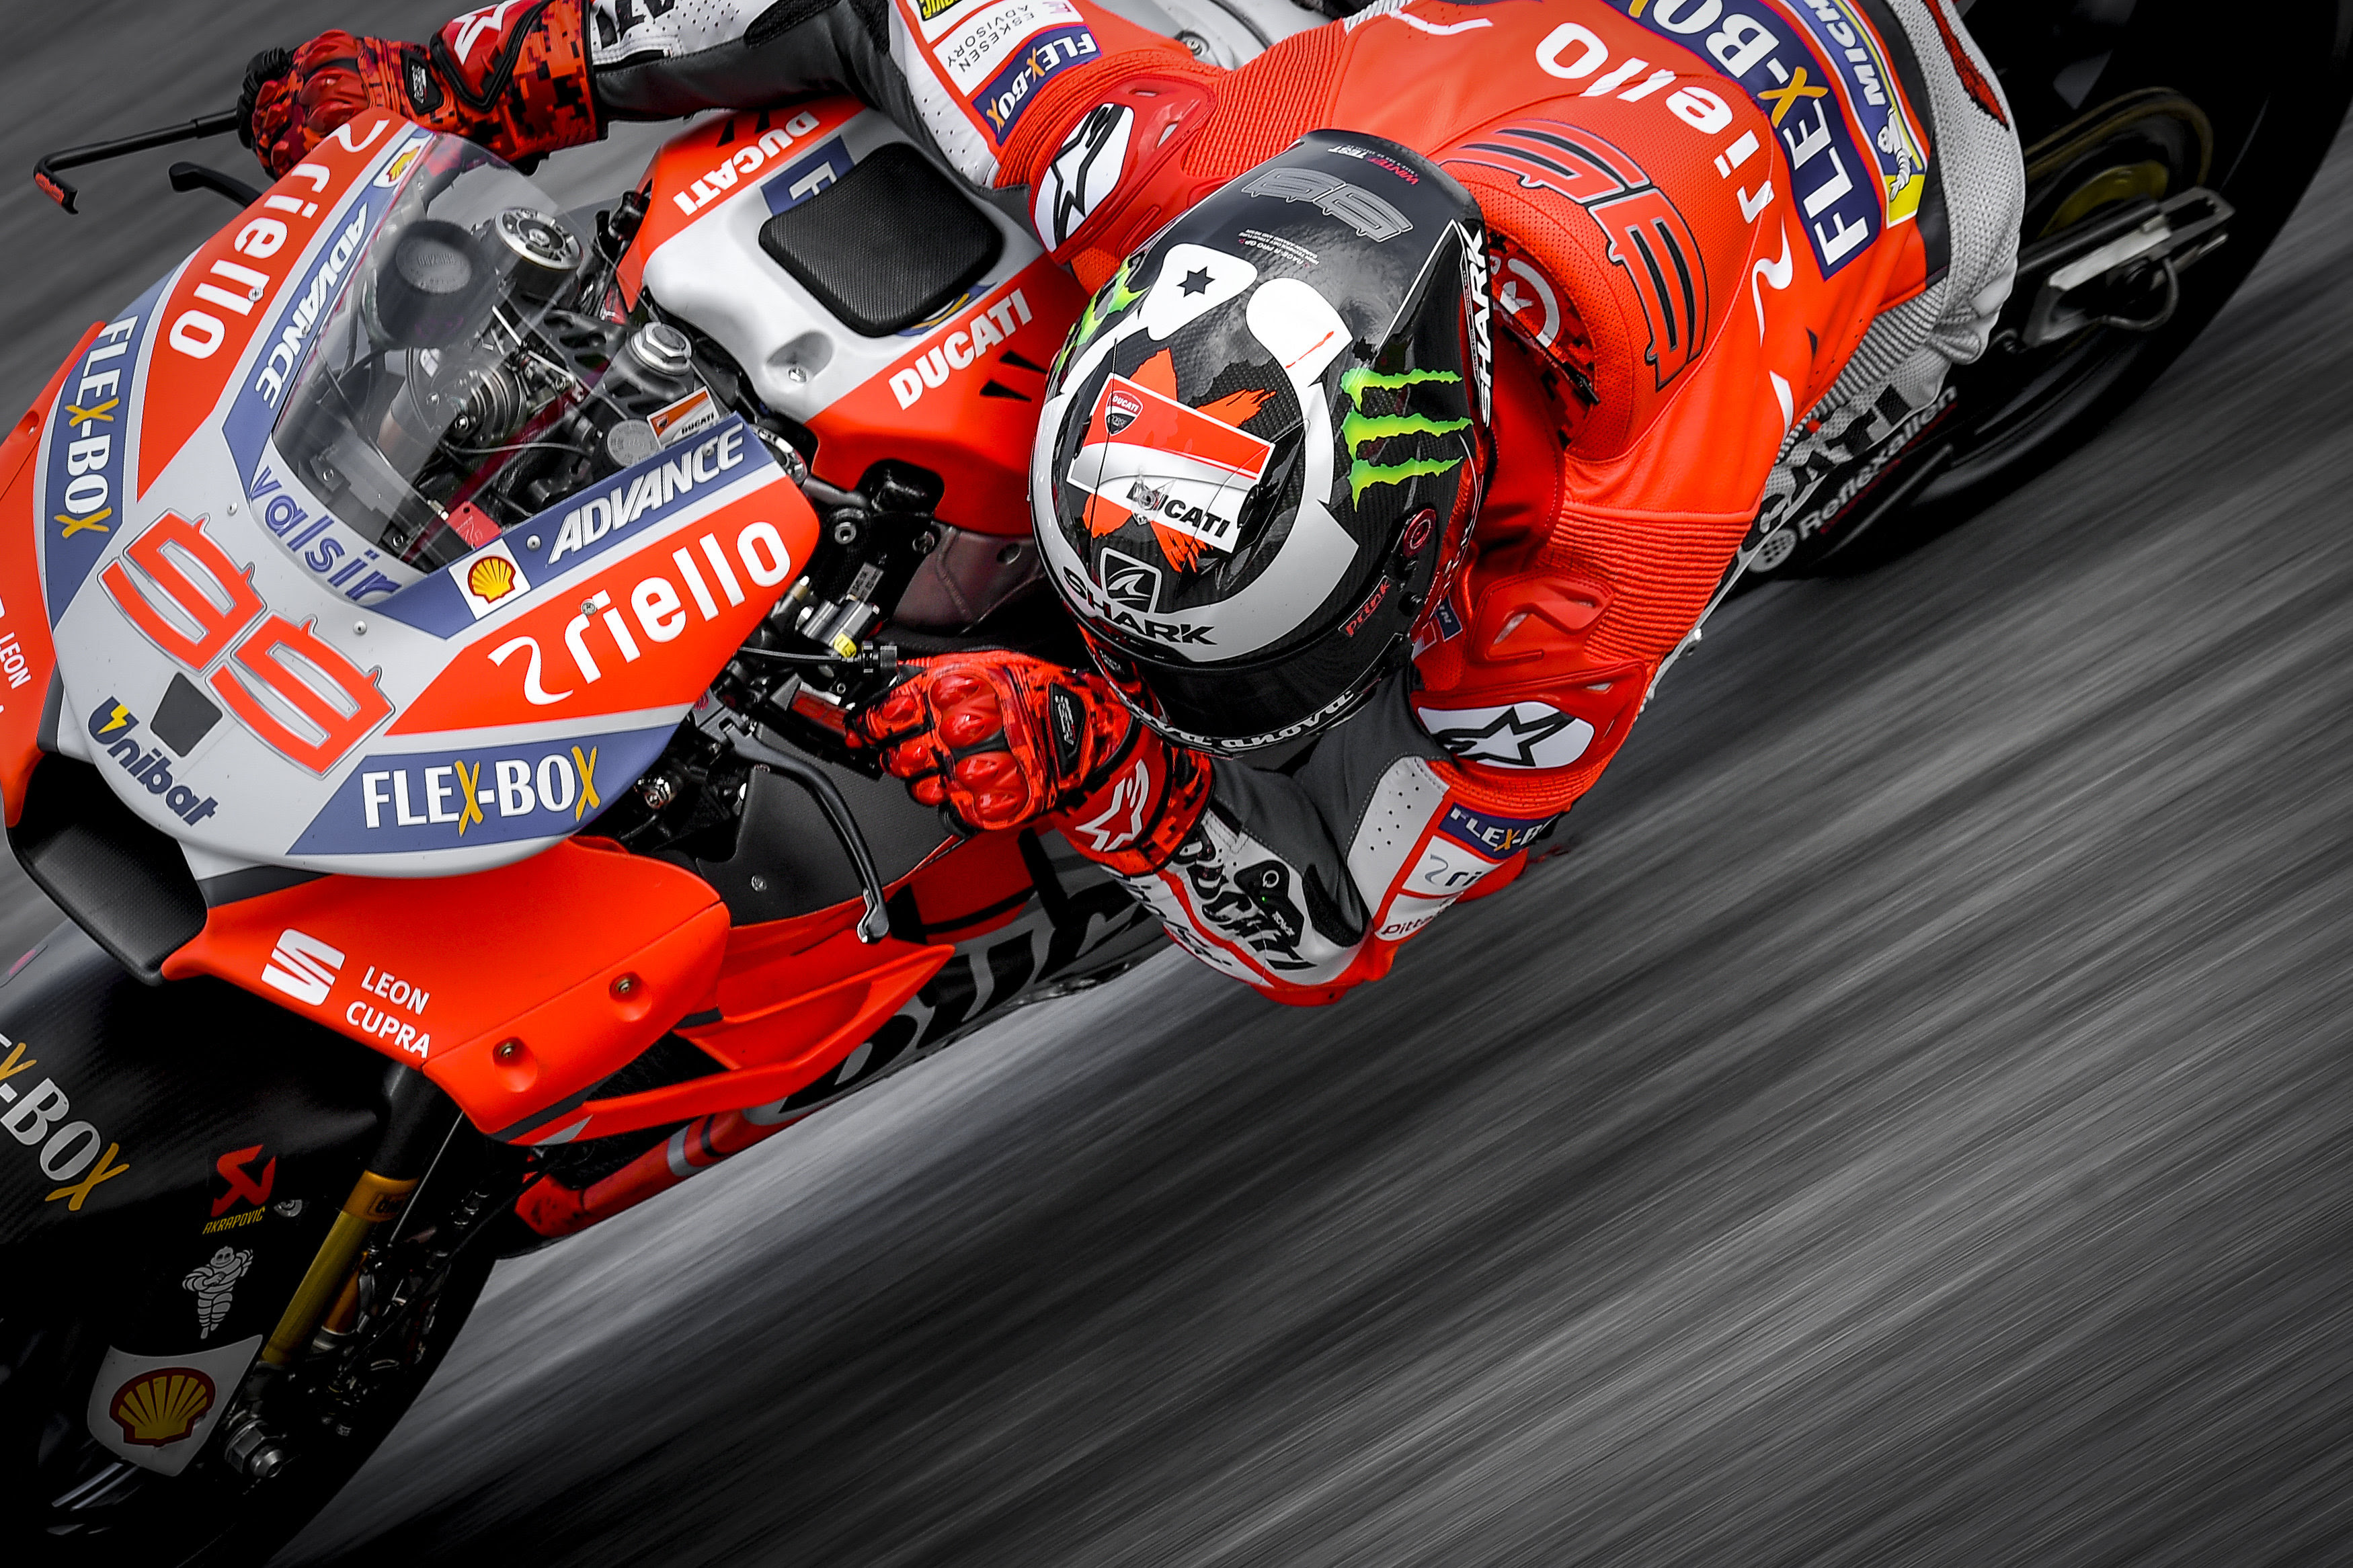 Jorge Lorenzo Sets Fastest Two Wheeled Circuit Lap At Sepang Motogp Vettel Expects Indian To Be Secondfastest F1 Track Of Ducati Tops On The Third Day First Test Tuesday Photo By Srinivasa Krishnan